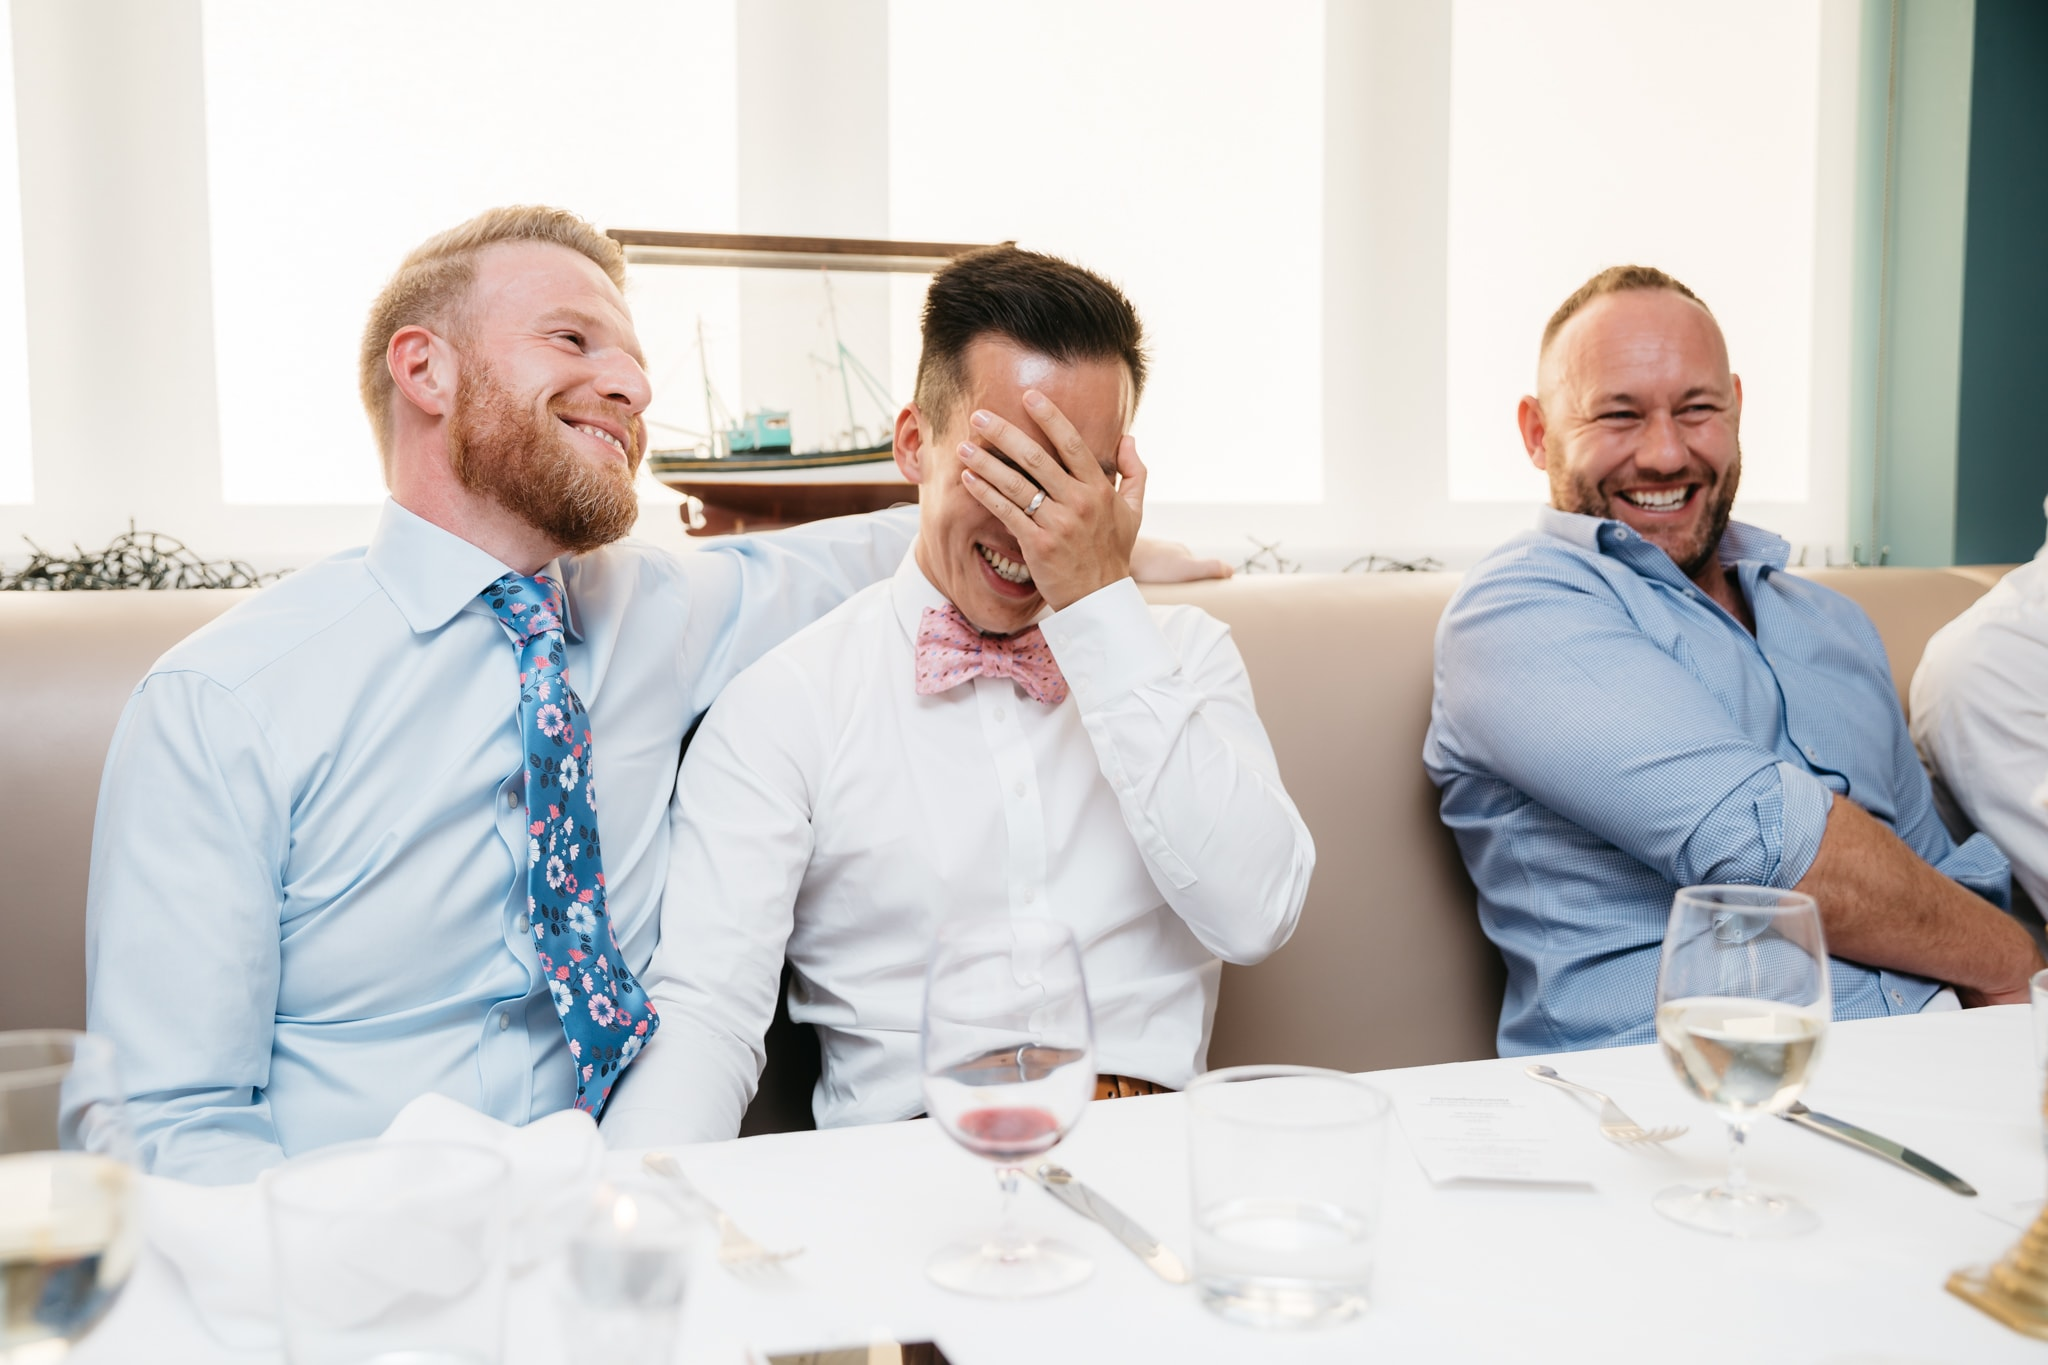 Gay couple laughing during speeches